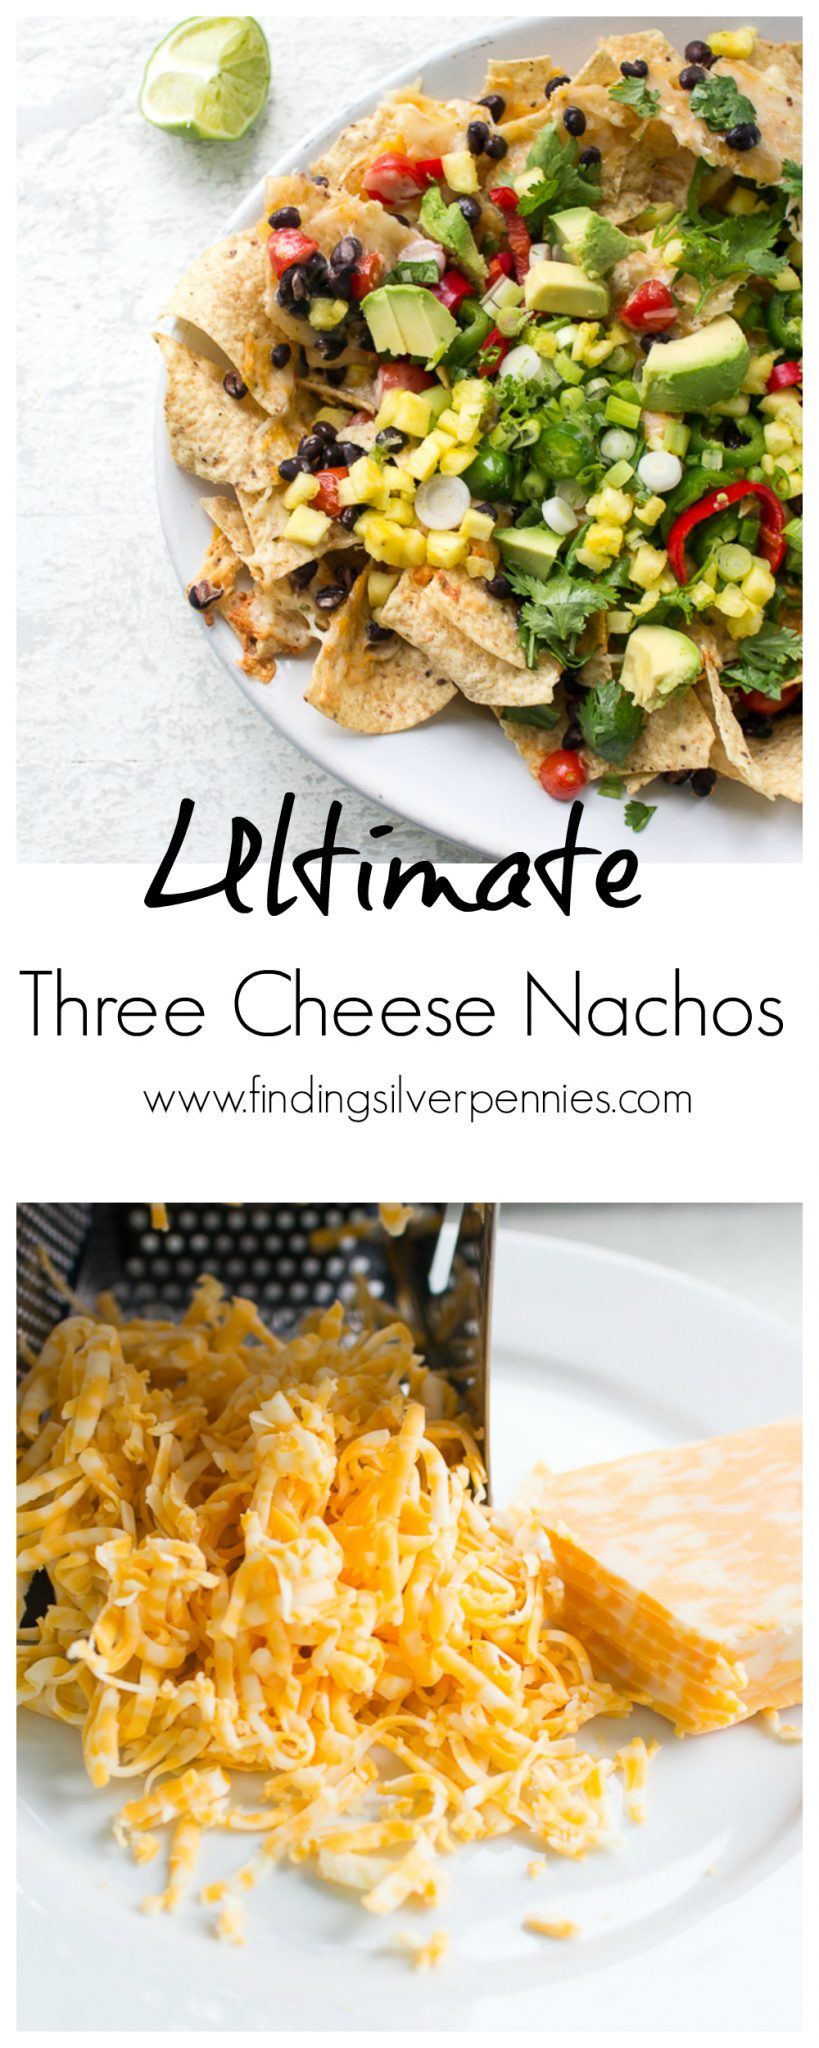 How to make the ultimate three cheese nachos with spicy jalapeño and pineapple